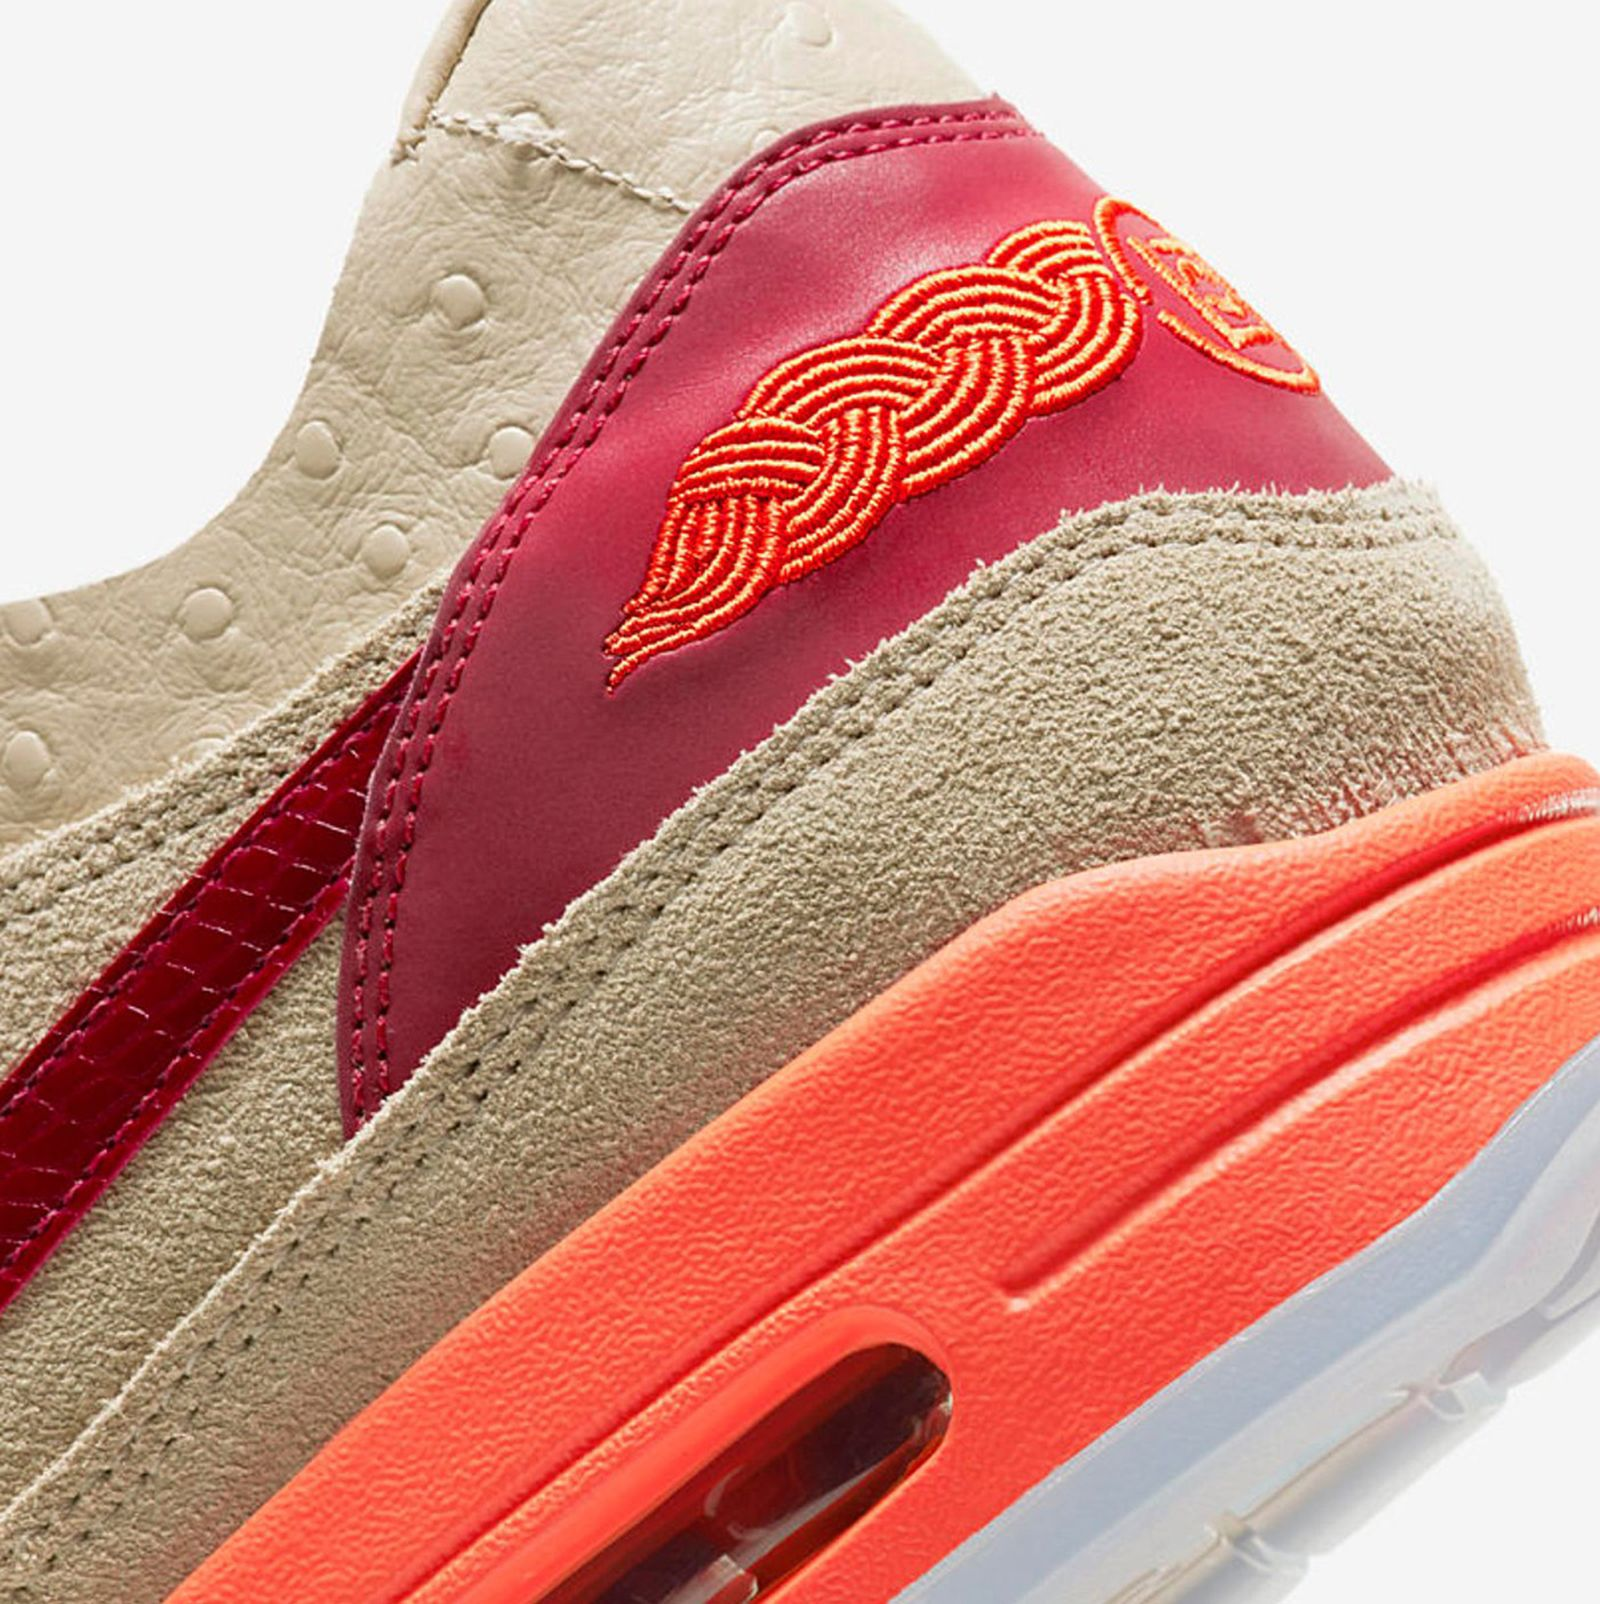 clot-nike-air-max-1-kiss-of-death-2021-release-date-price-05